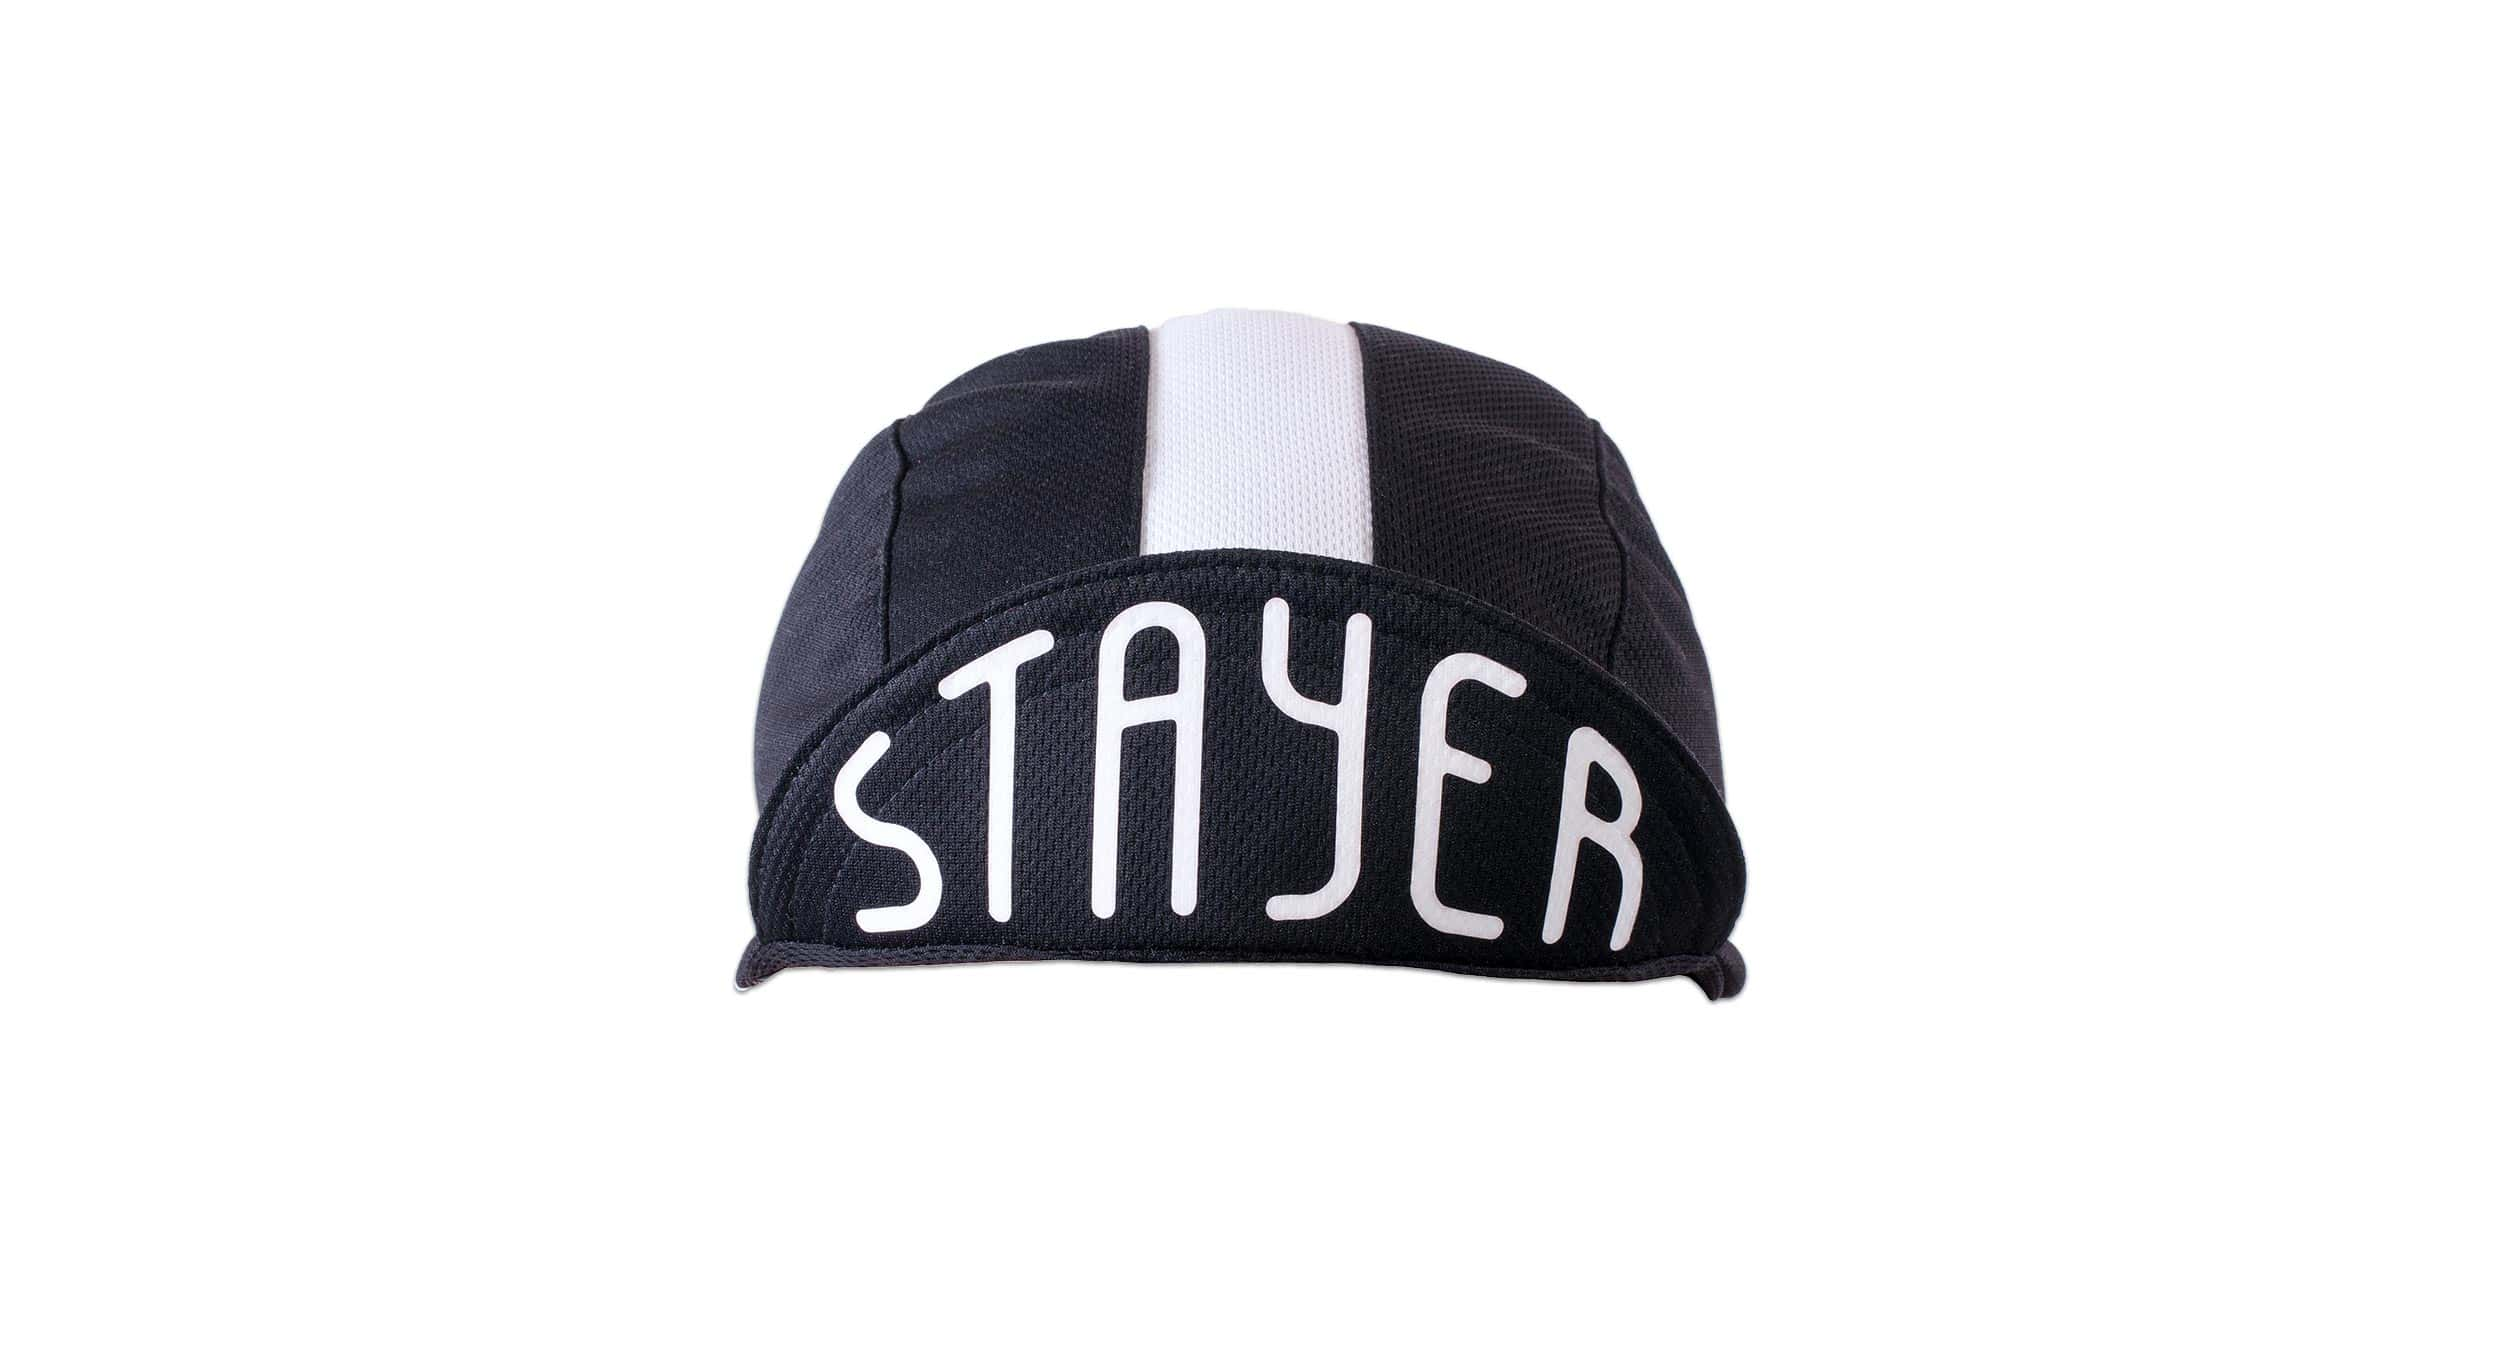 Stayer cycles Stayer Walz cap